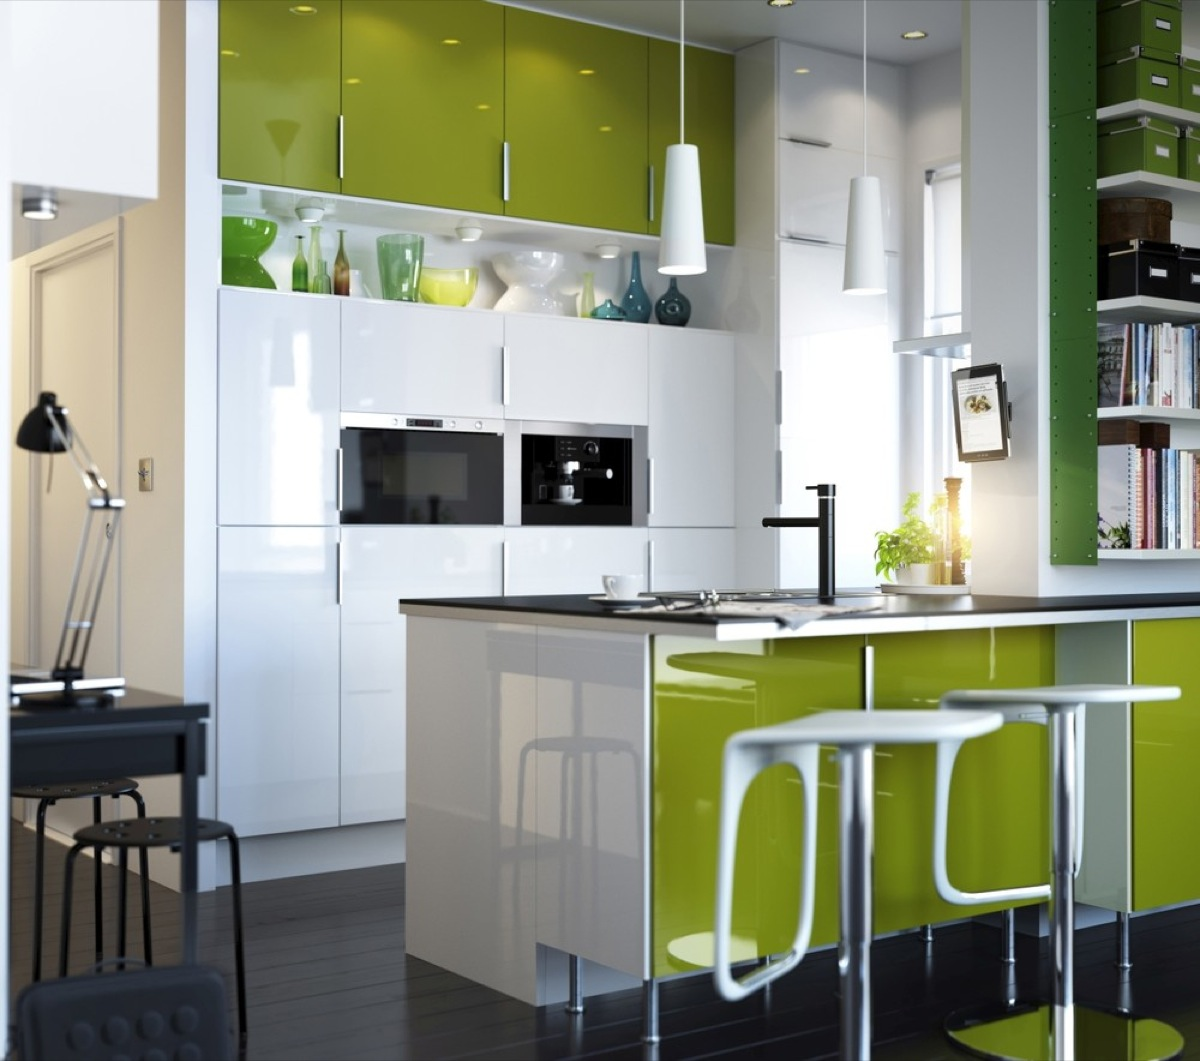 Kitchen with white and green furniture